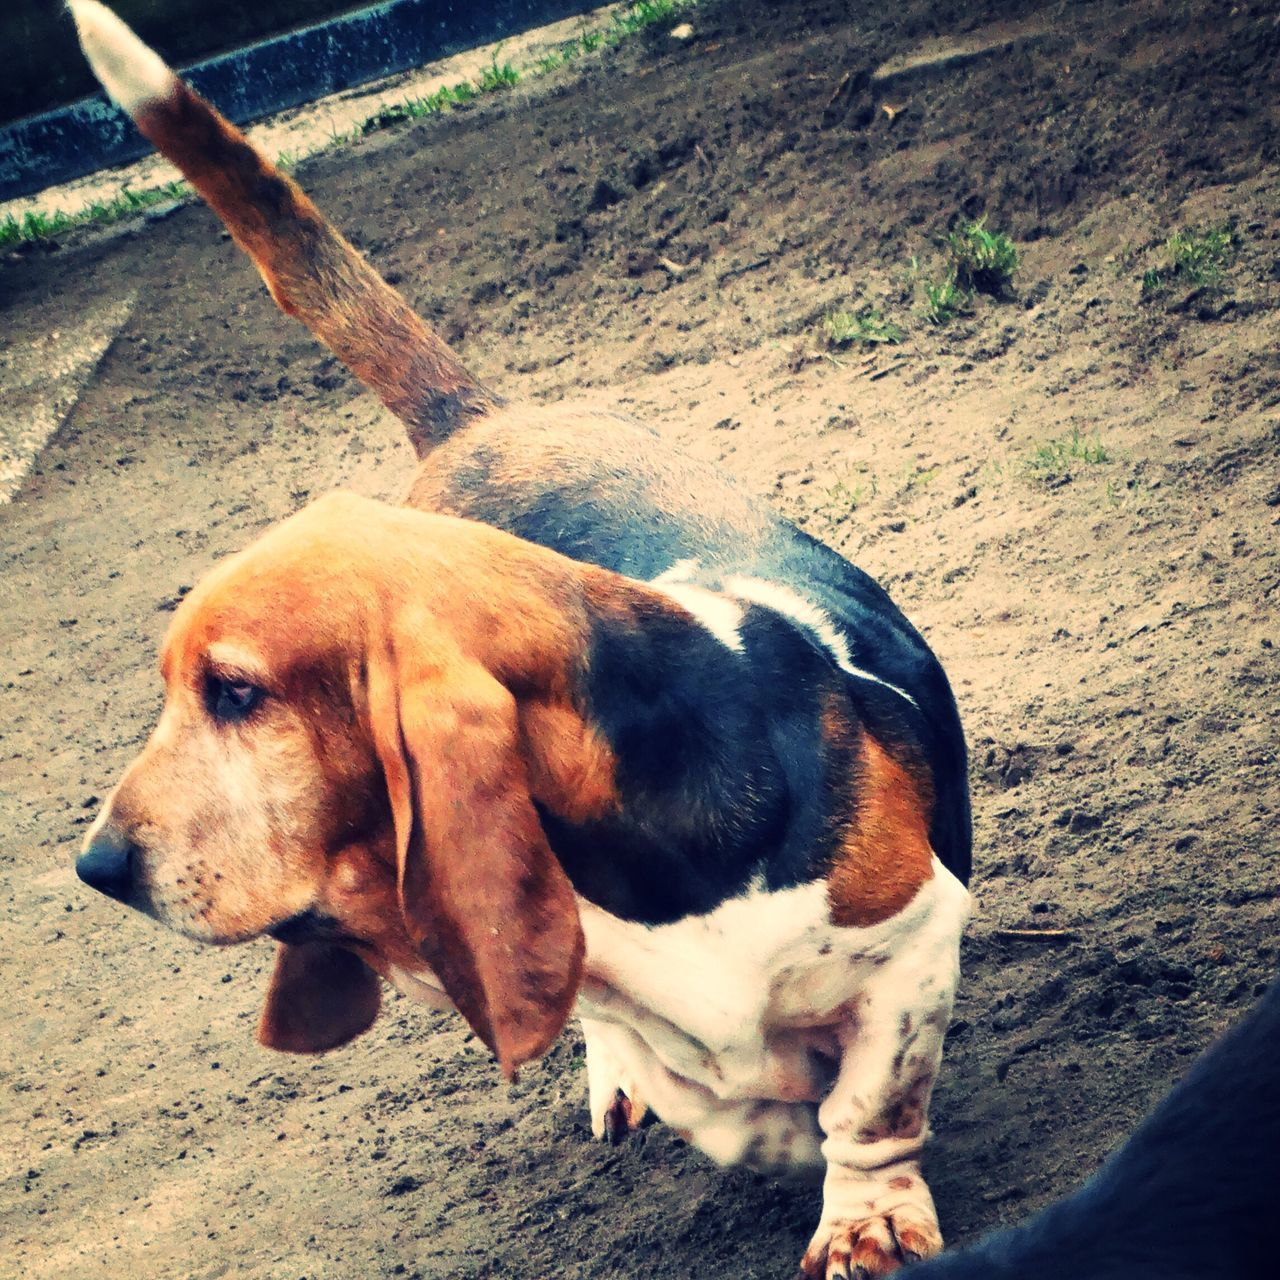 Dog Domestic Animals Mammal One Animal Animal Themes Pets Outdoors Day No People Nature Close-up Beautiful Woman Lily May Collection Lilymayparker.blogspot.be Basset